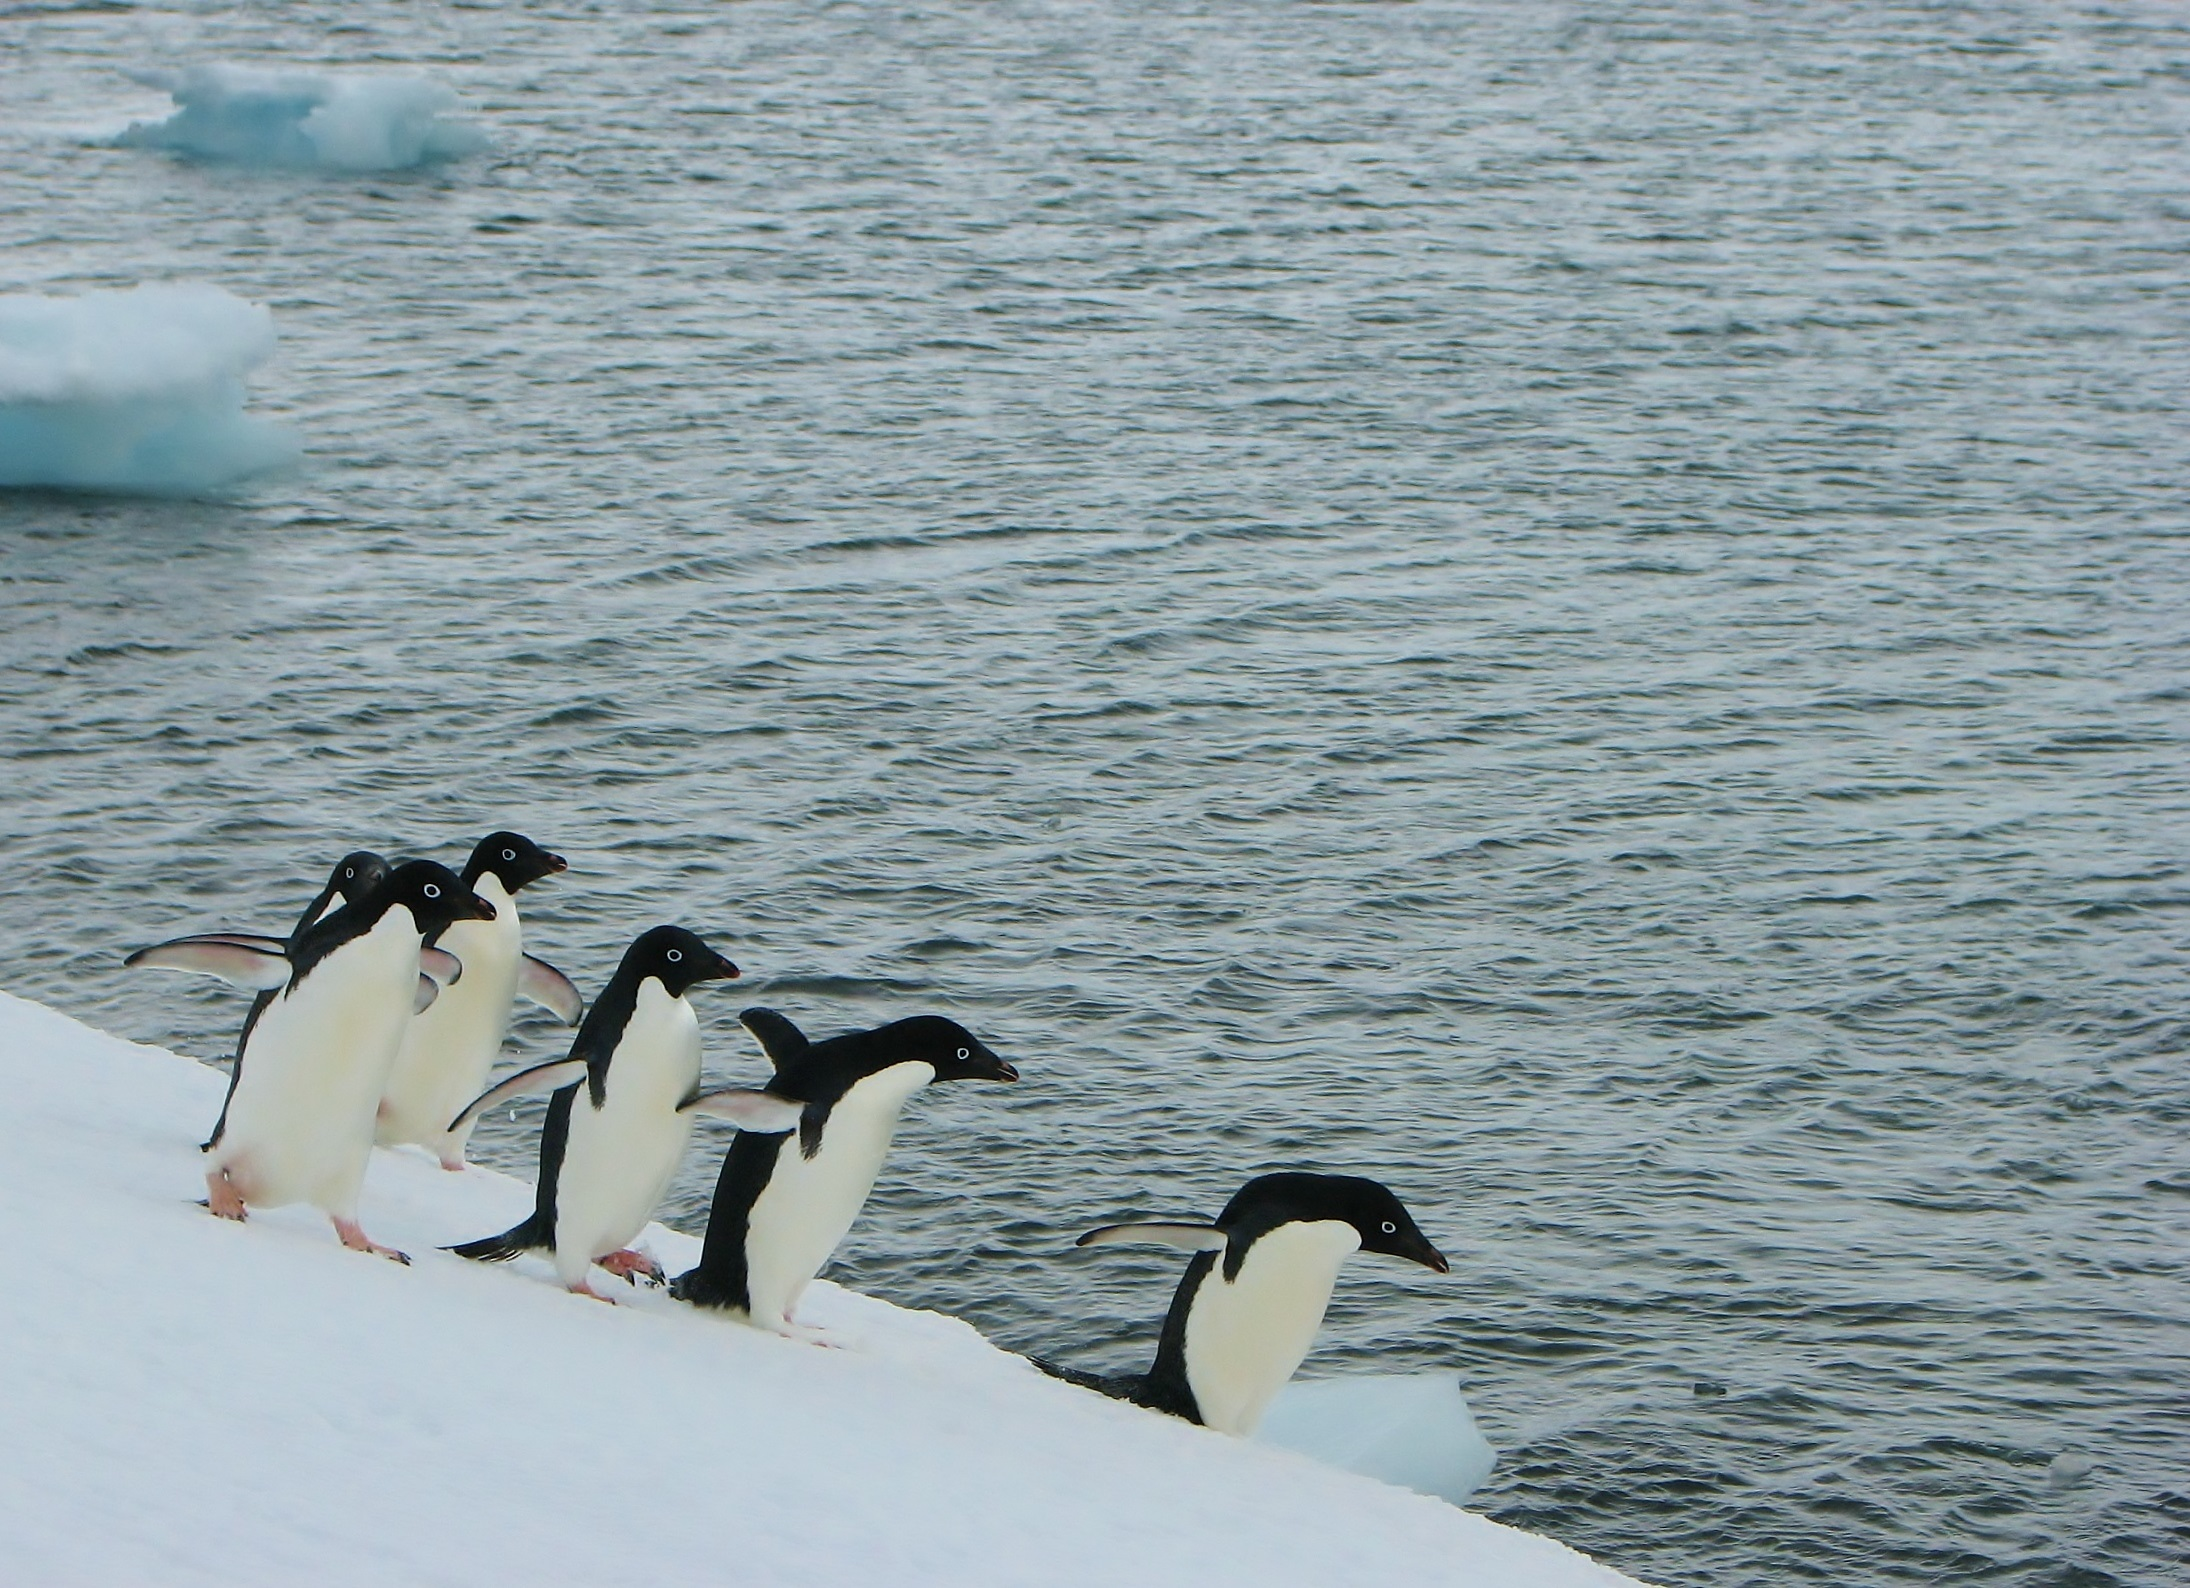 A group of Adélie penguins walking along an iceberg, South Shetland Islands, Antarctic Peninsula.  Photo: J. Hinke, NOAA